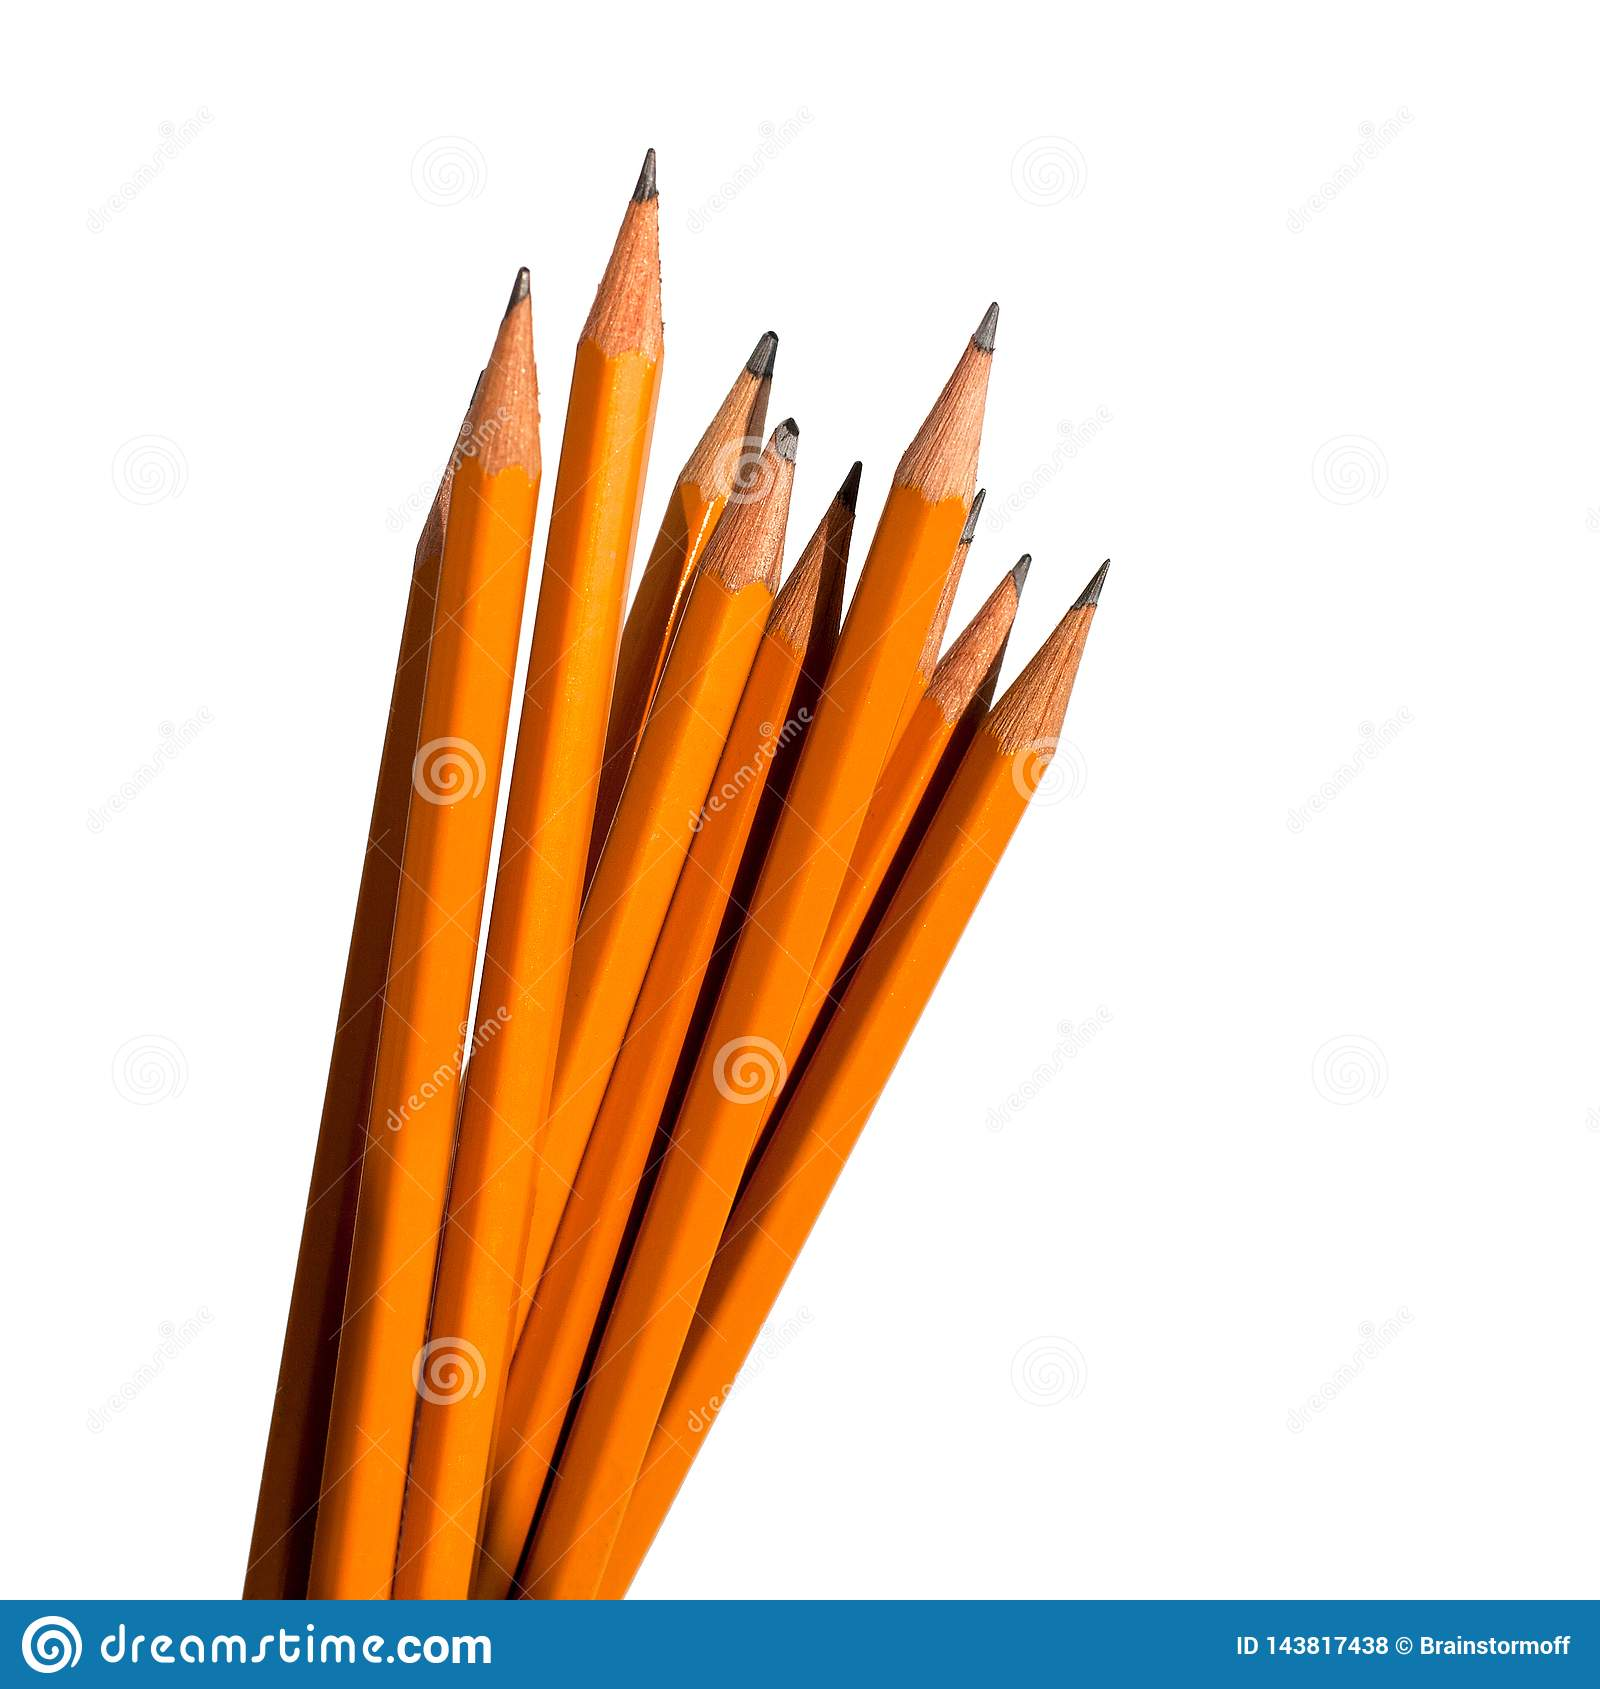 Graphic pencils on white background in group isolated close up macro